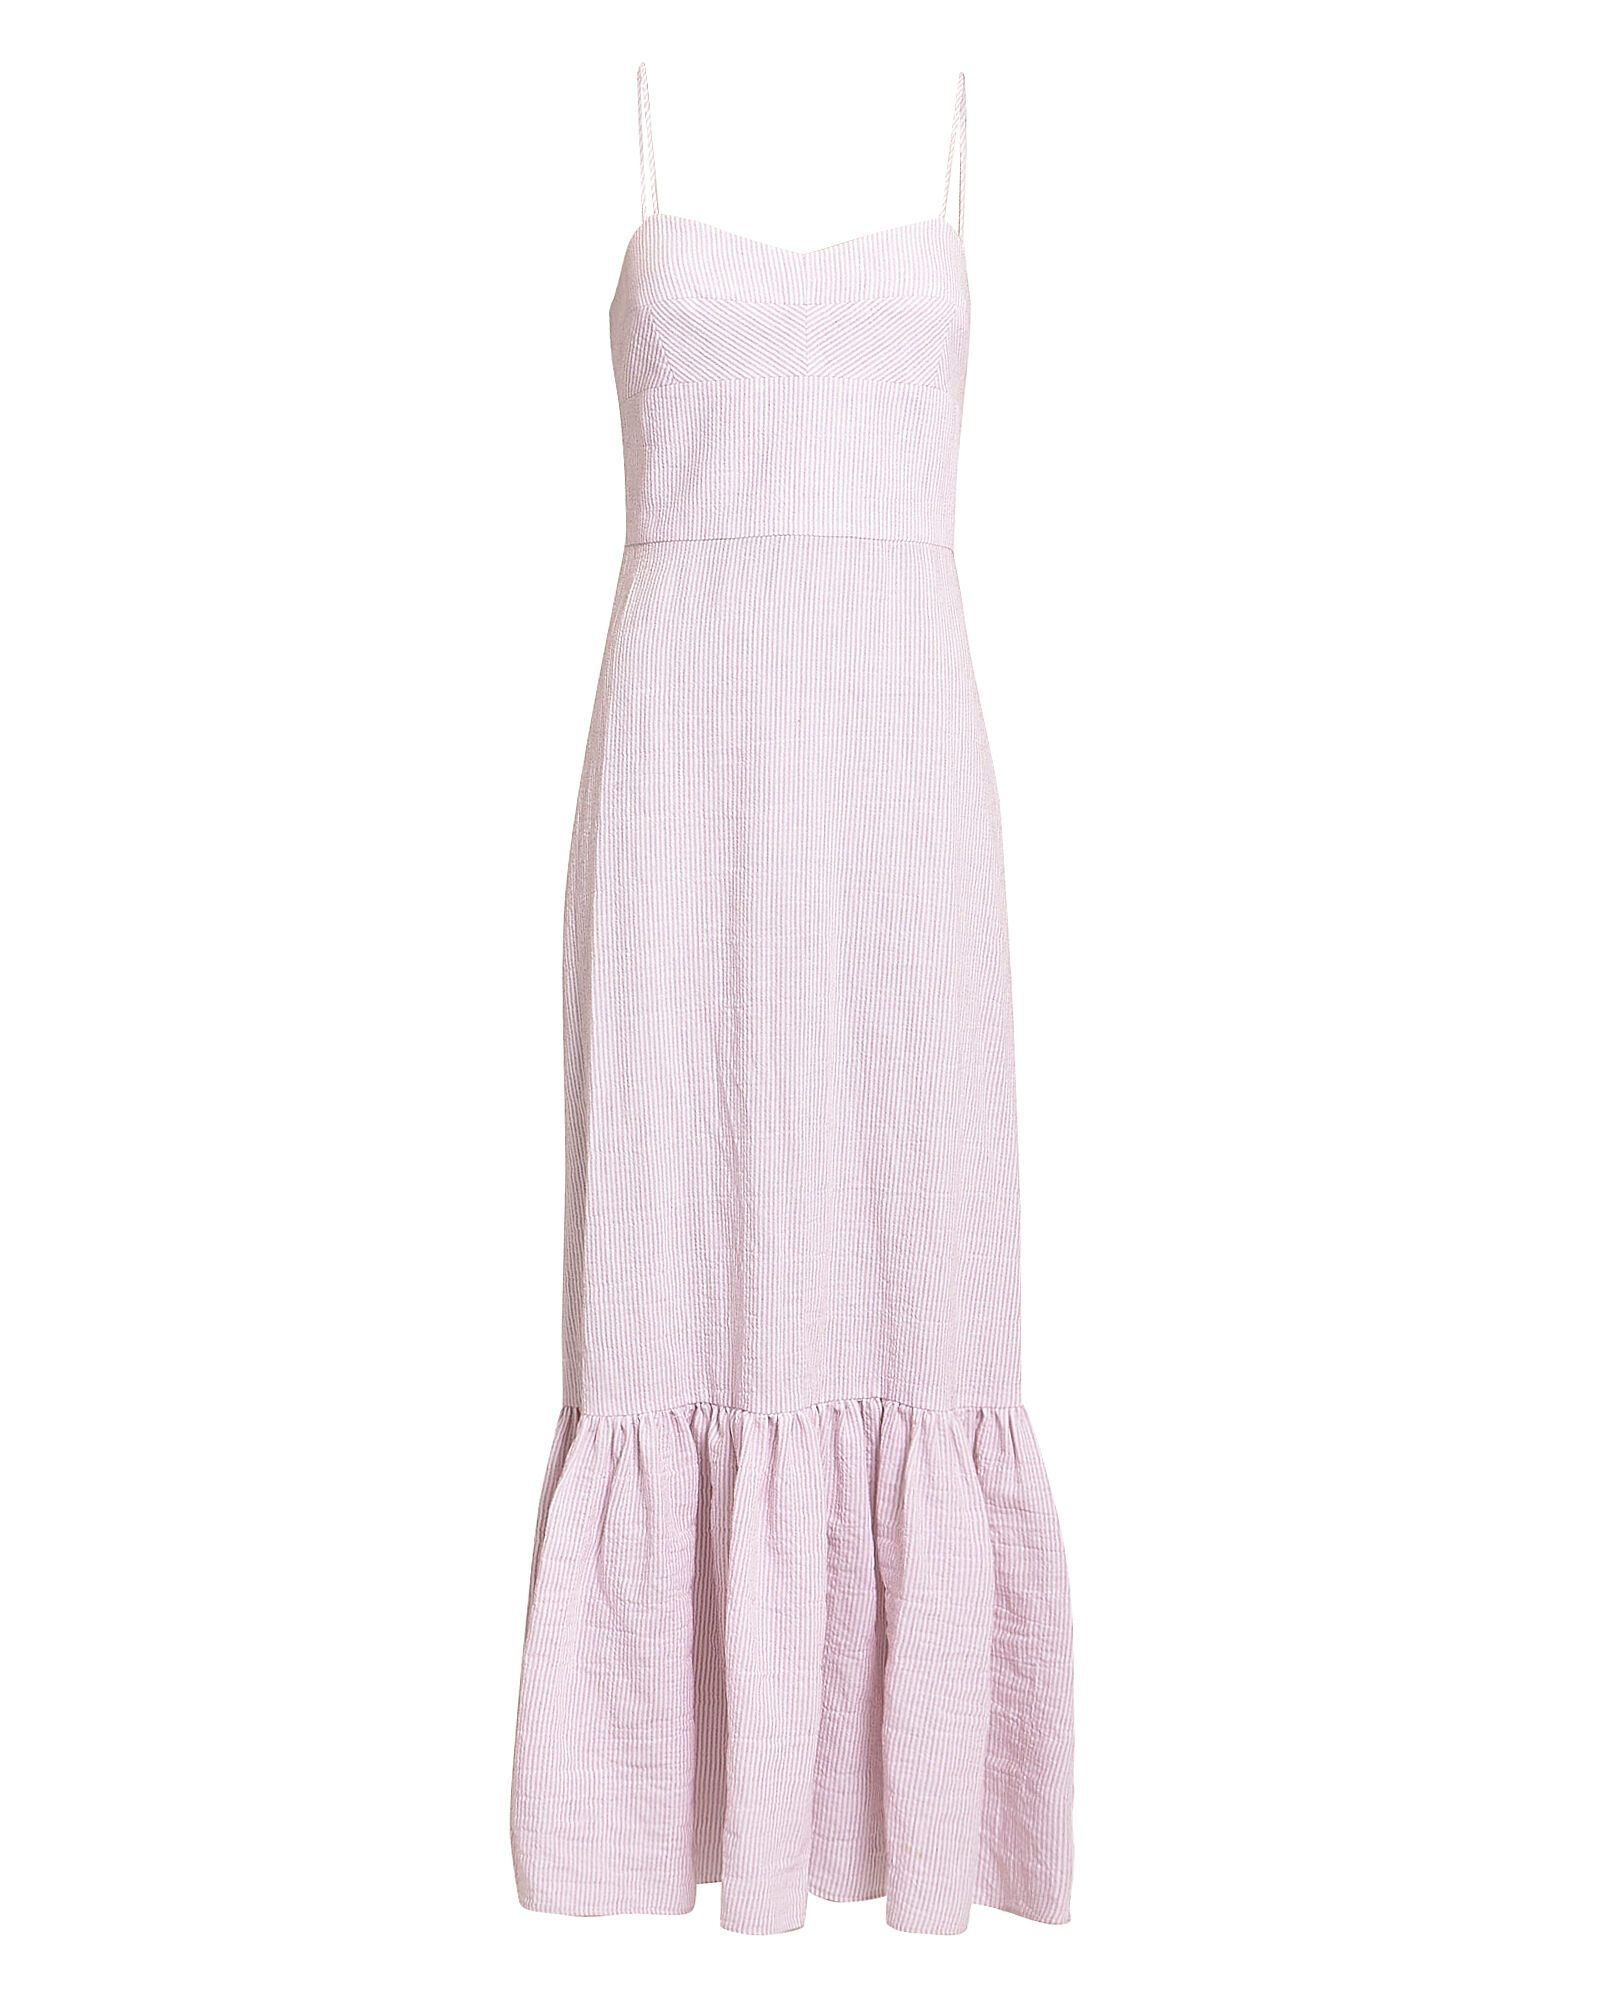 Surbi Striped Seersucker Dress, PINK, hi-res